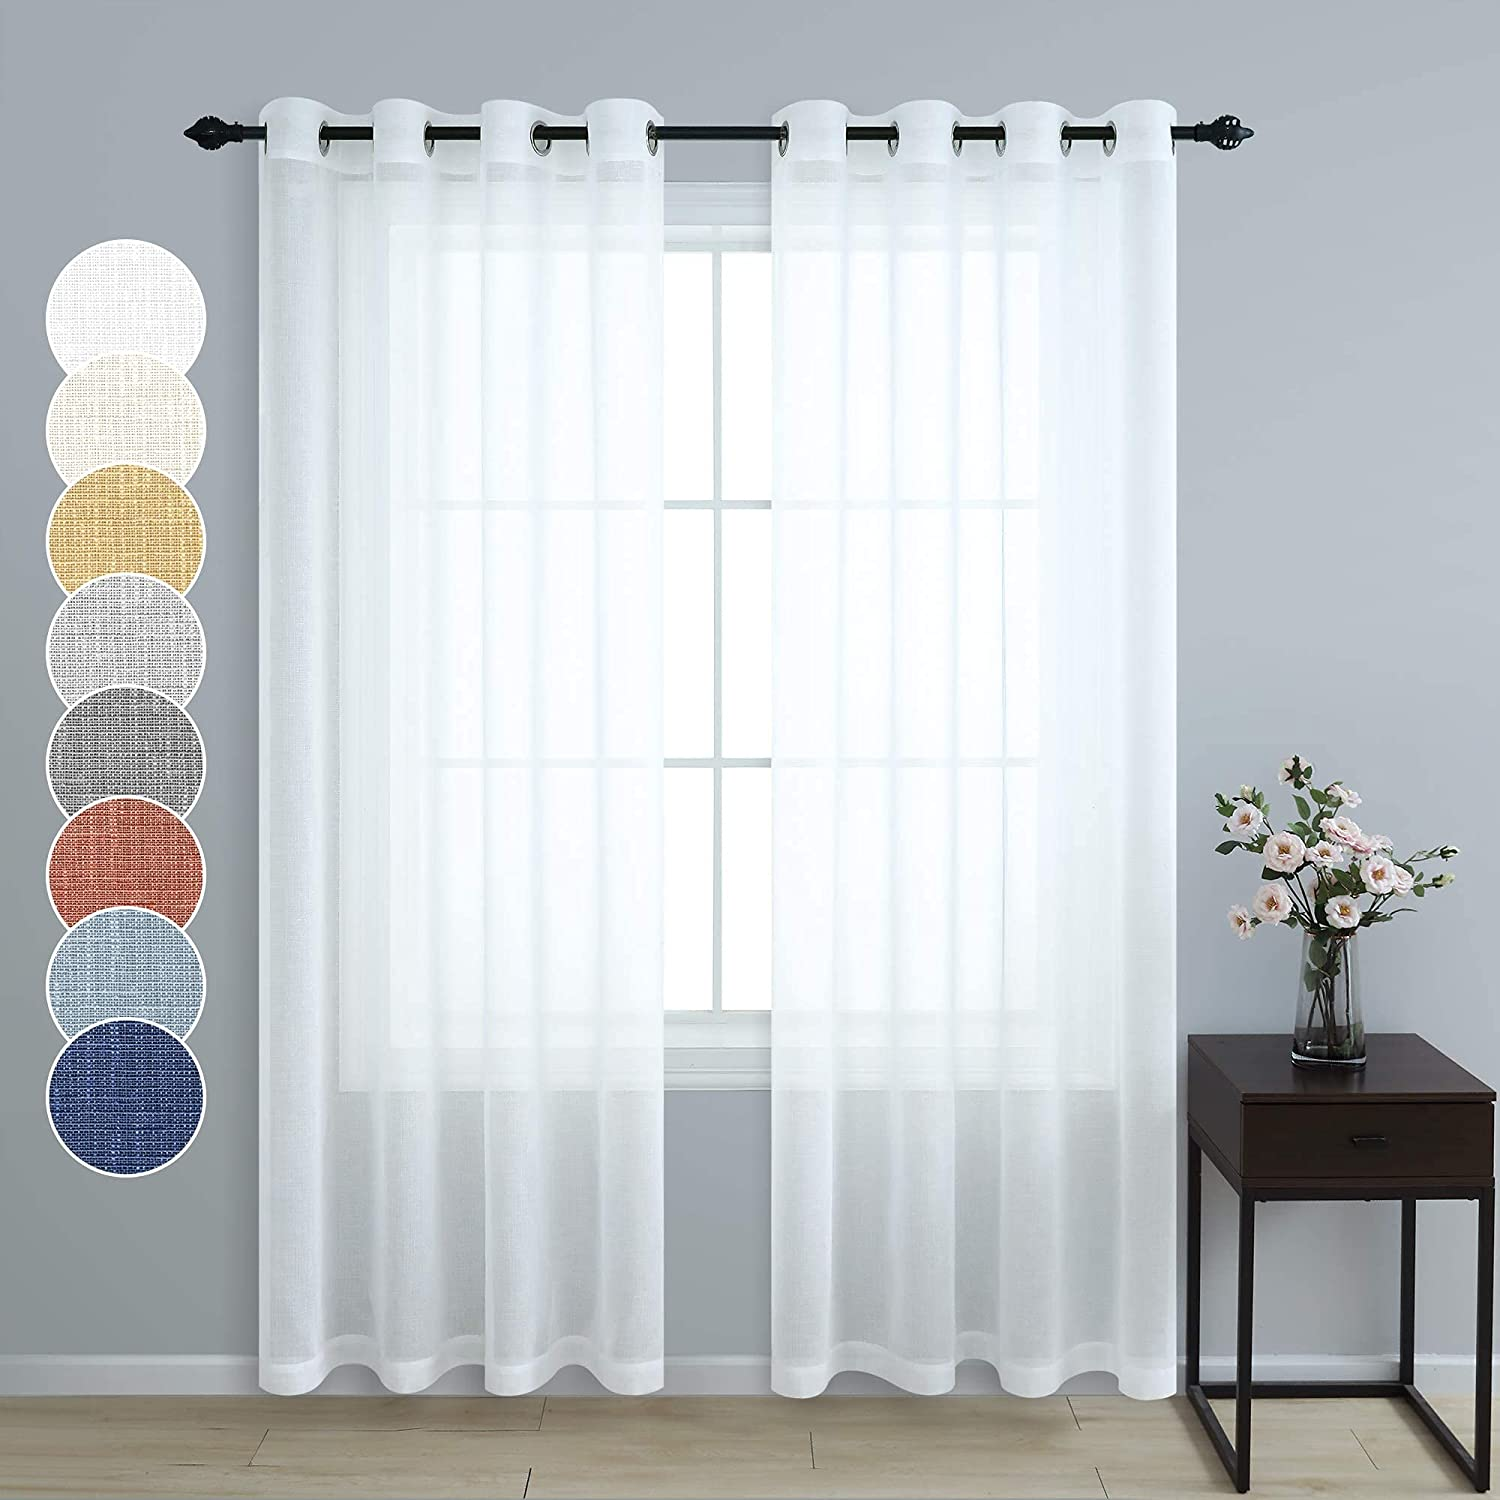 Pitalk White Sheer Curtains 84 Inches Long for Living Room 2 Panel Grommet Window Drape Lightweight Semi Translucent Cotton Linen Look Lace Curtain for Bedroom Shabby Chic Farmhouse Decor 52x84 Length